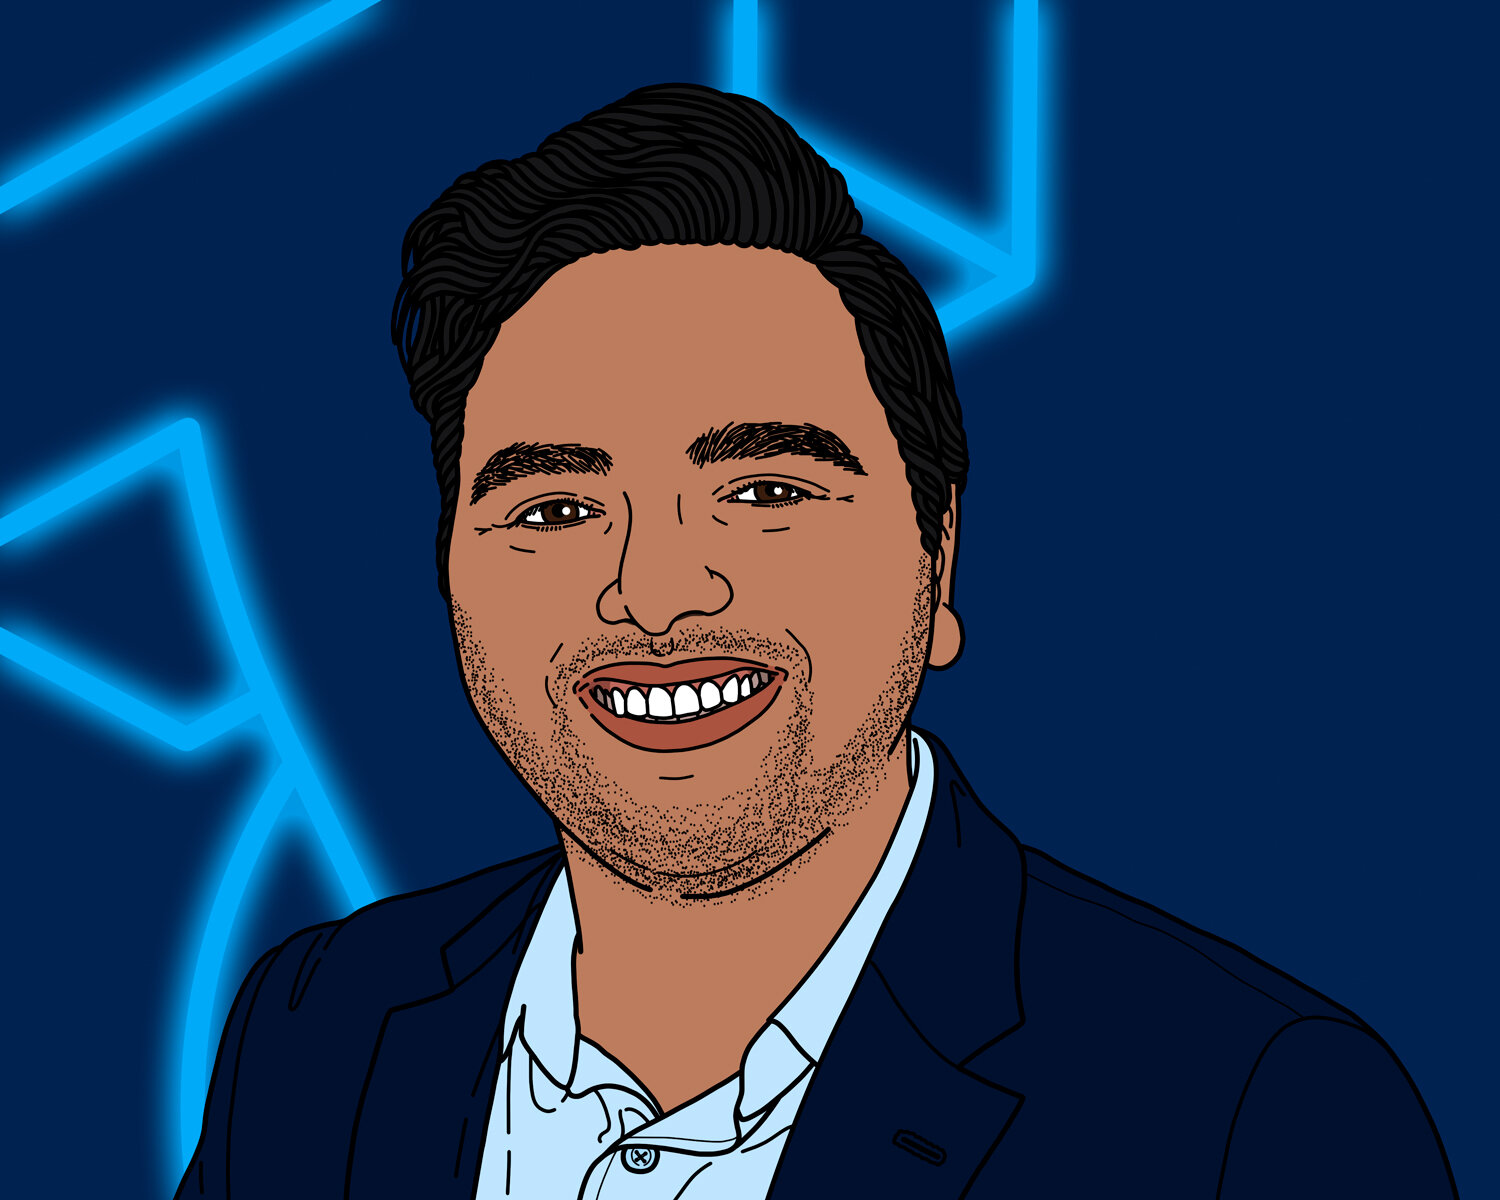 Neel S. Madhukar, Co-founder and CEO of OneThree Biotech